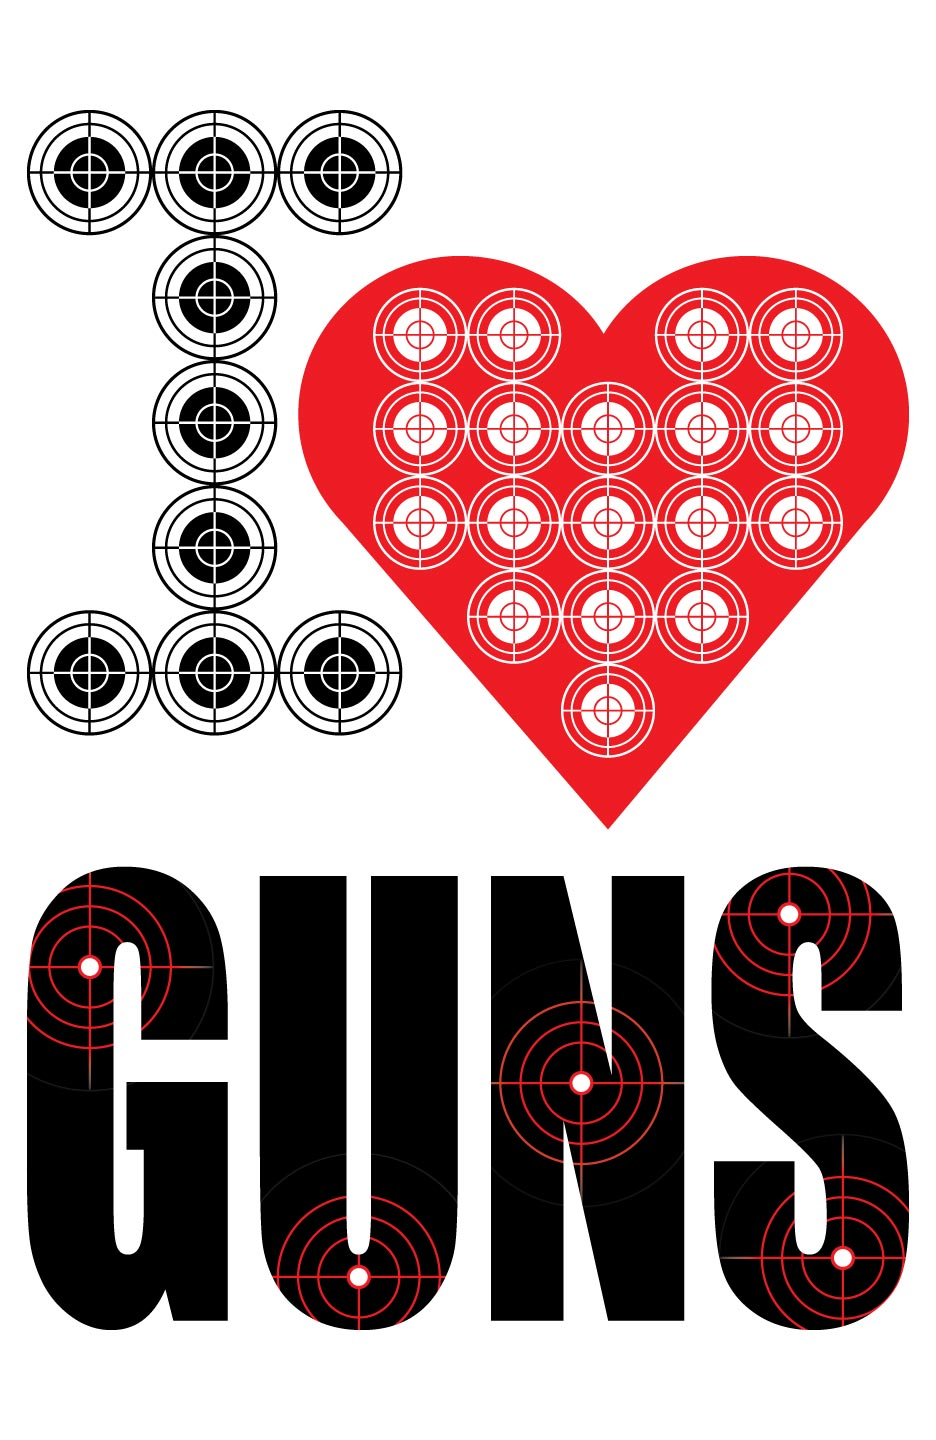 I Heart Guns Shooting Target at PhotosAndFun.com